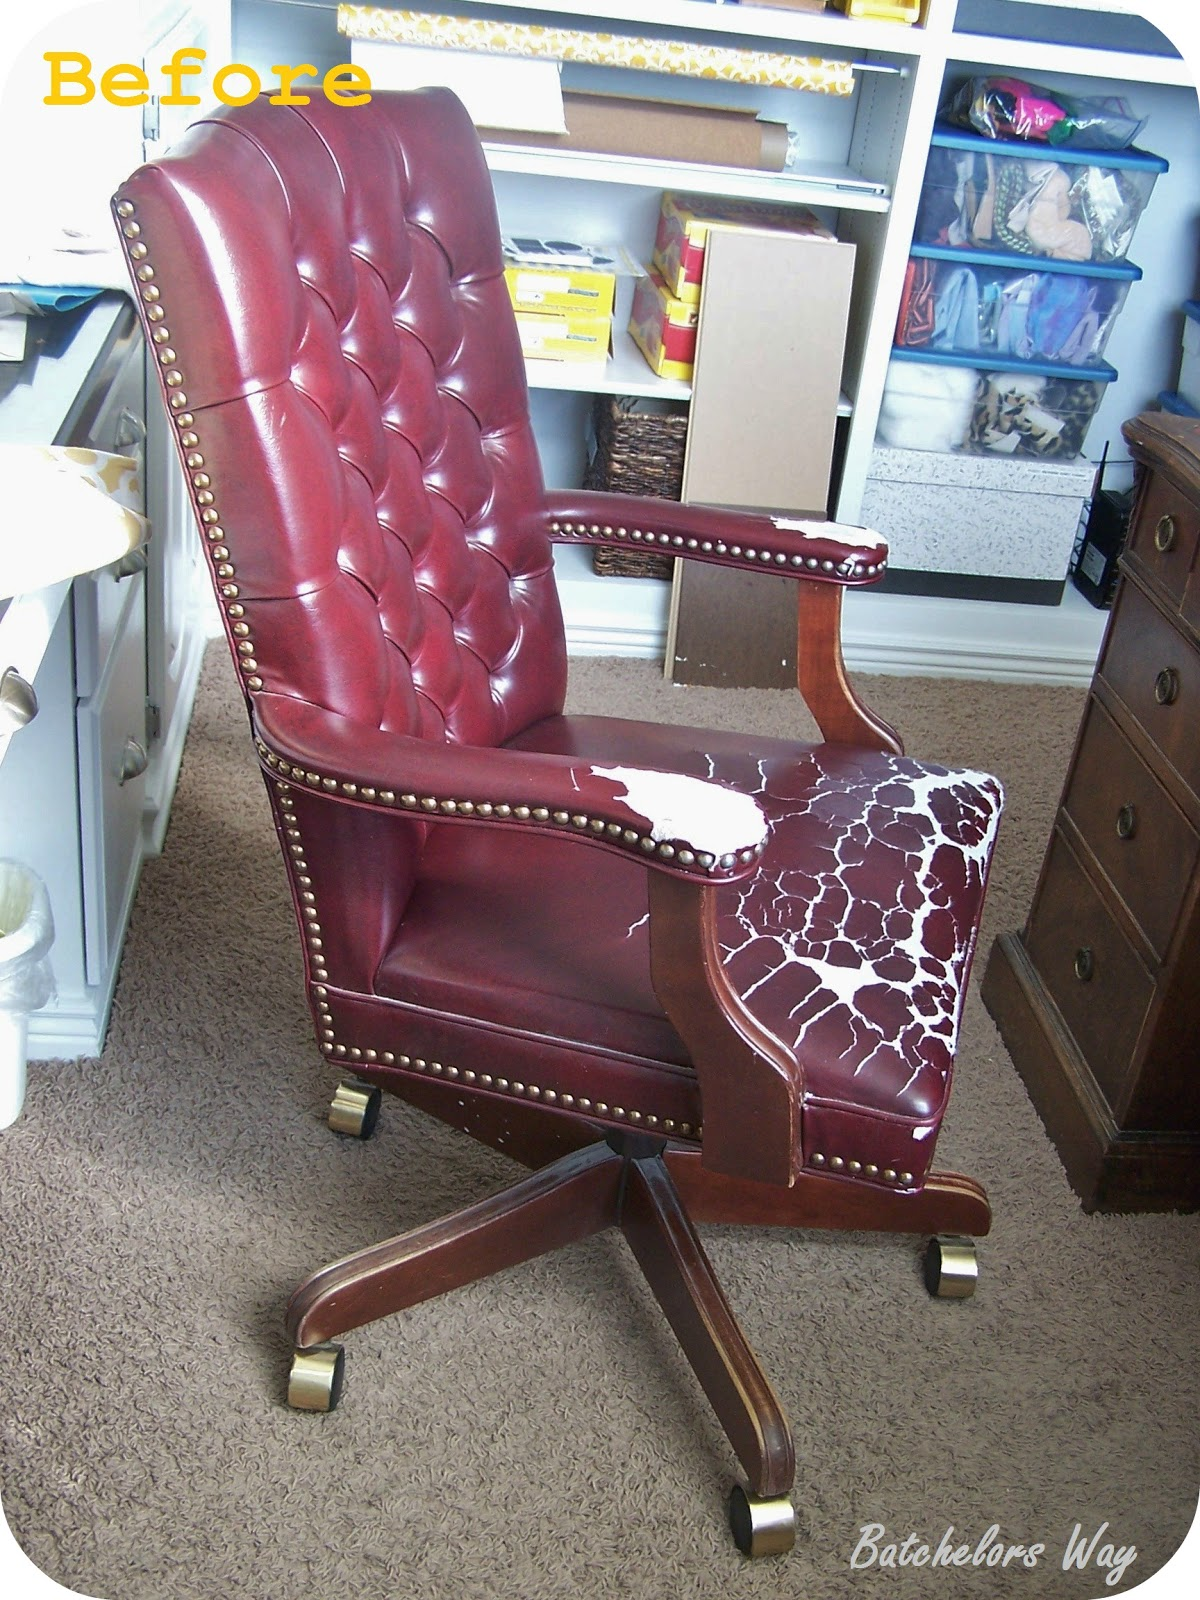 Reupholster Office Chair Batchelors Way Office Redo How To Reupholster A Chair